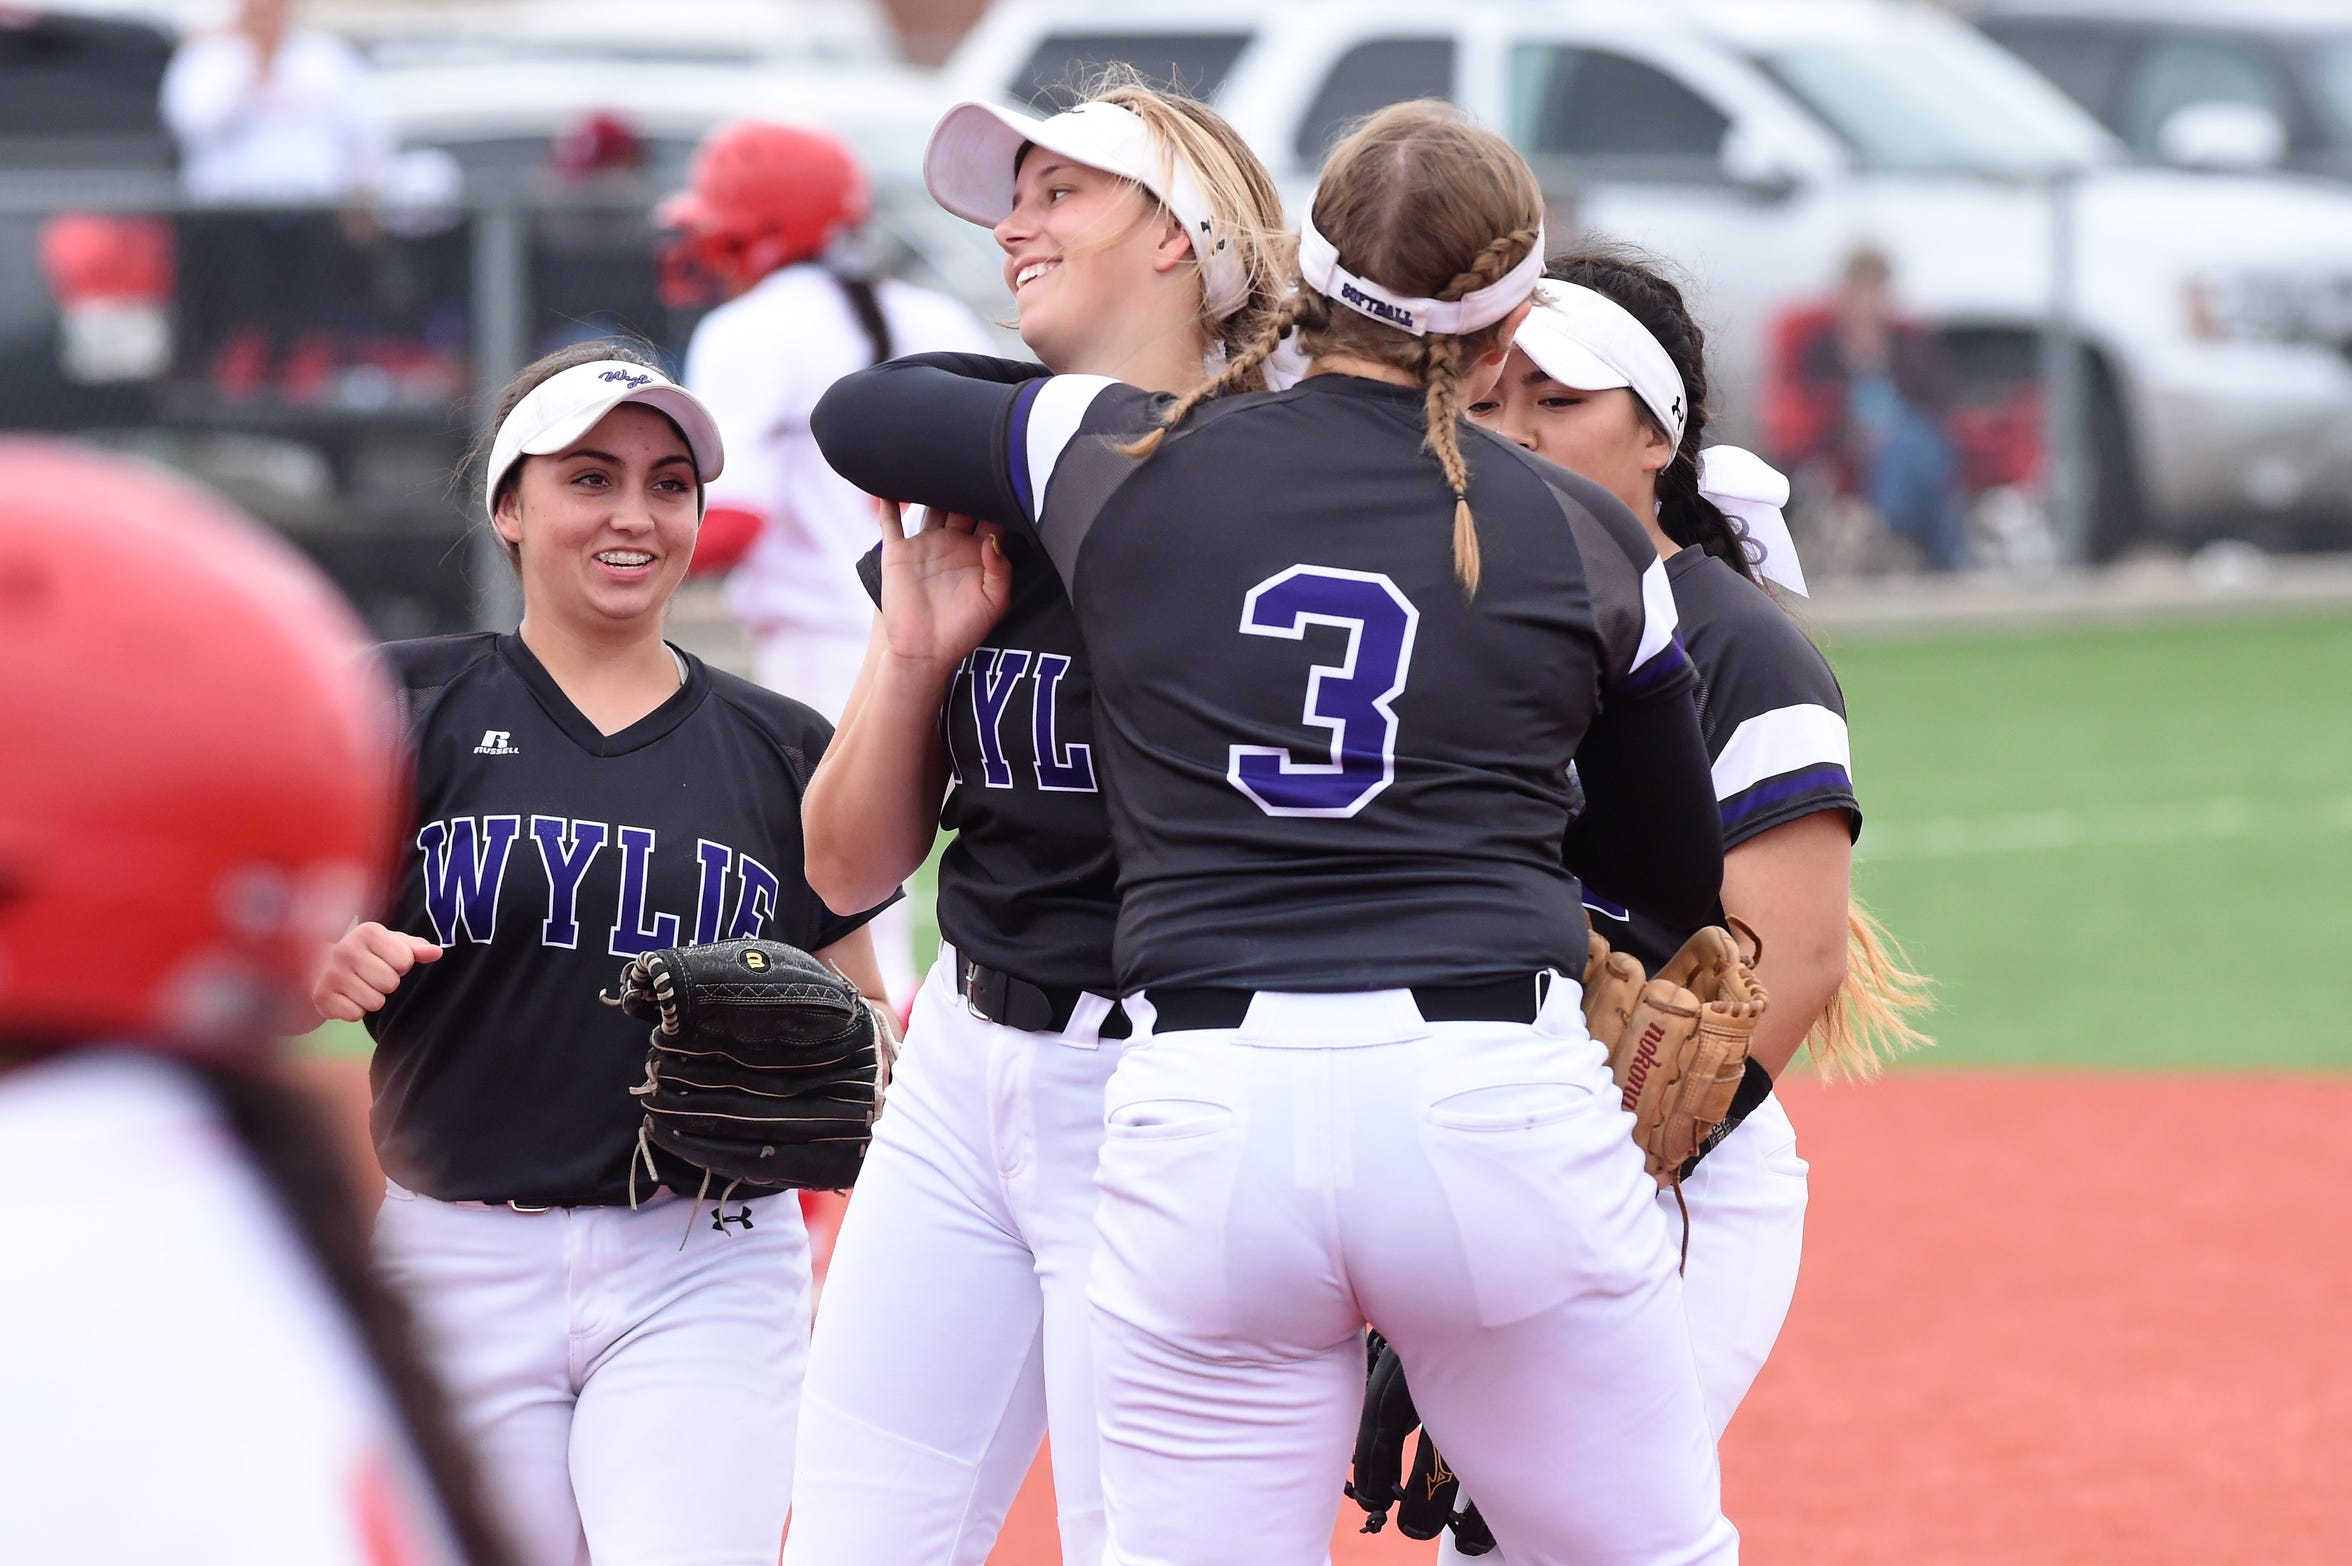 Wylie's Kaylee Philipp (3) hugs Kylie Barnes (13) after a double play against Lubbock Coronado in Game 3 of the Region I-5A quarterfinals. The Lady Bulldogs won a district title and reached the region semifinals in its first year competing in Class 5A.